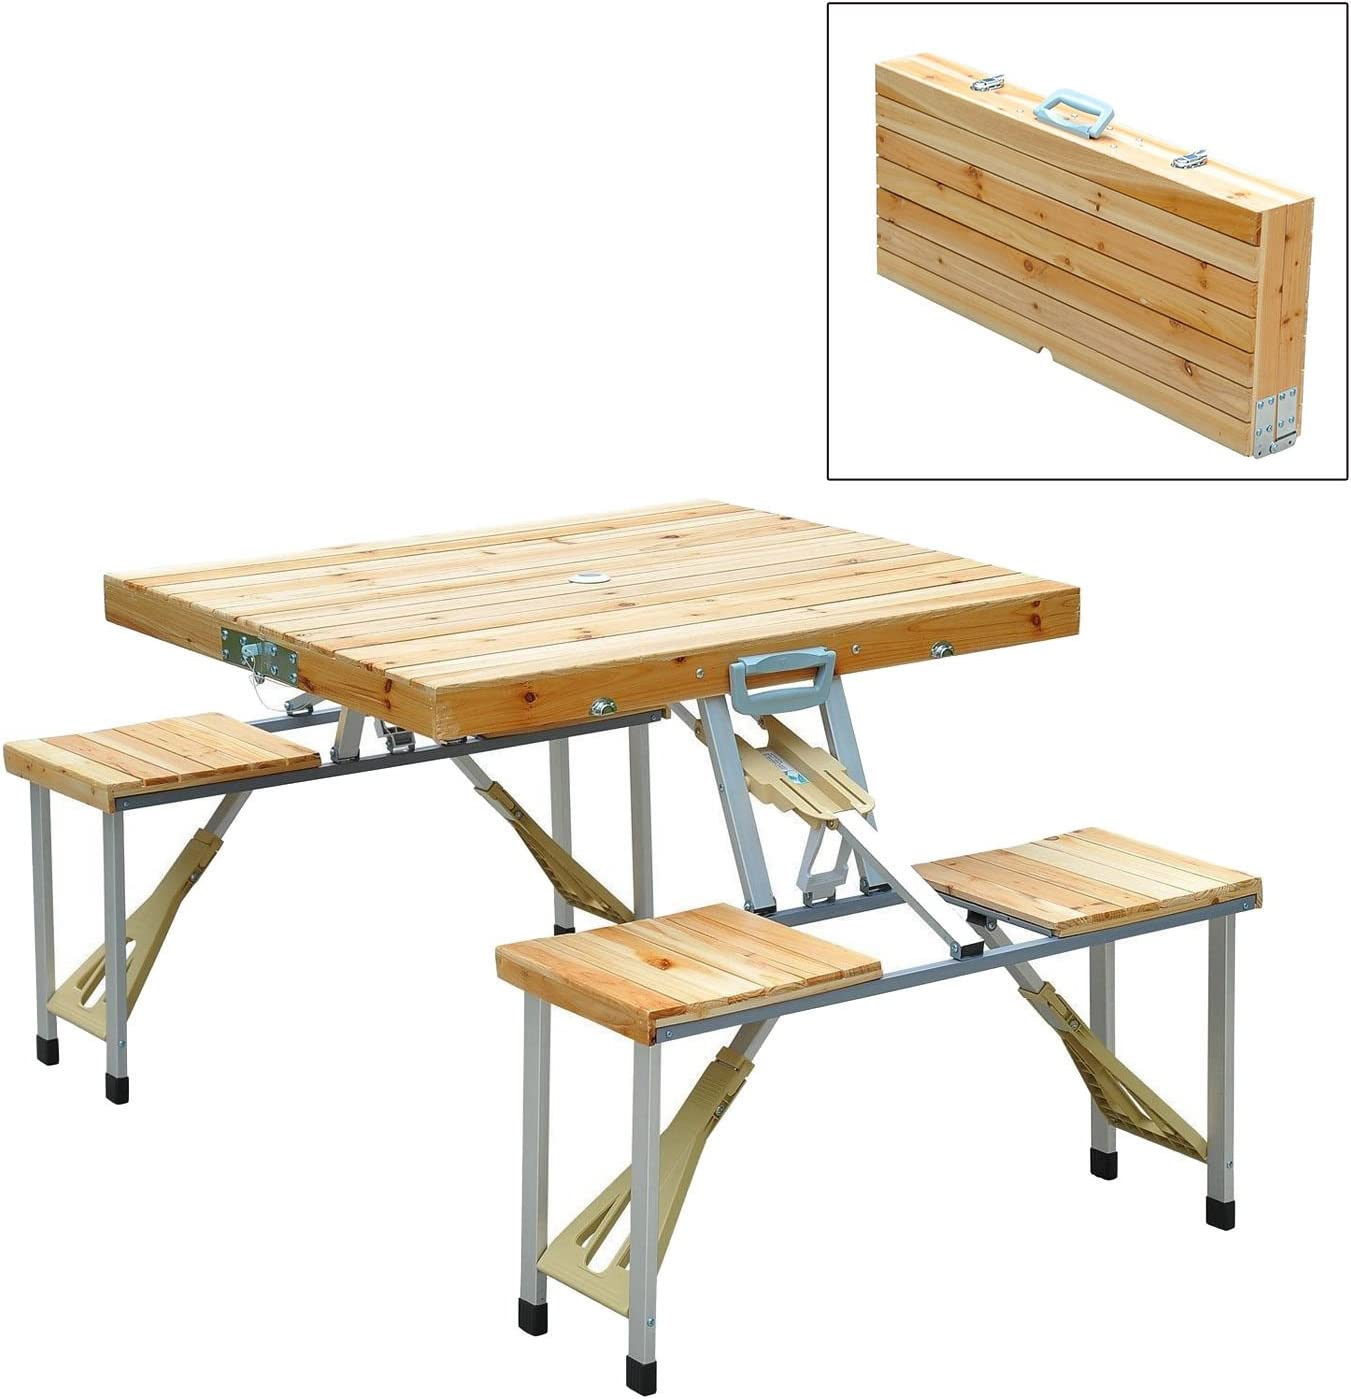 - Amazon.com: Wooden Camping Picnic Table Bench Seat Outdoor